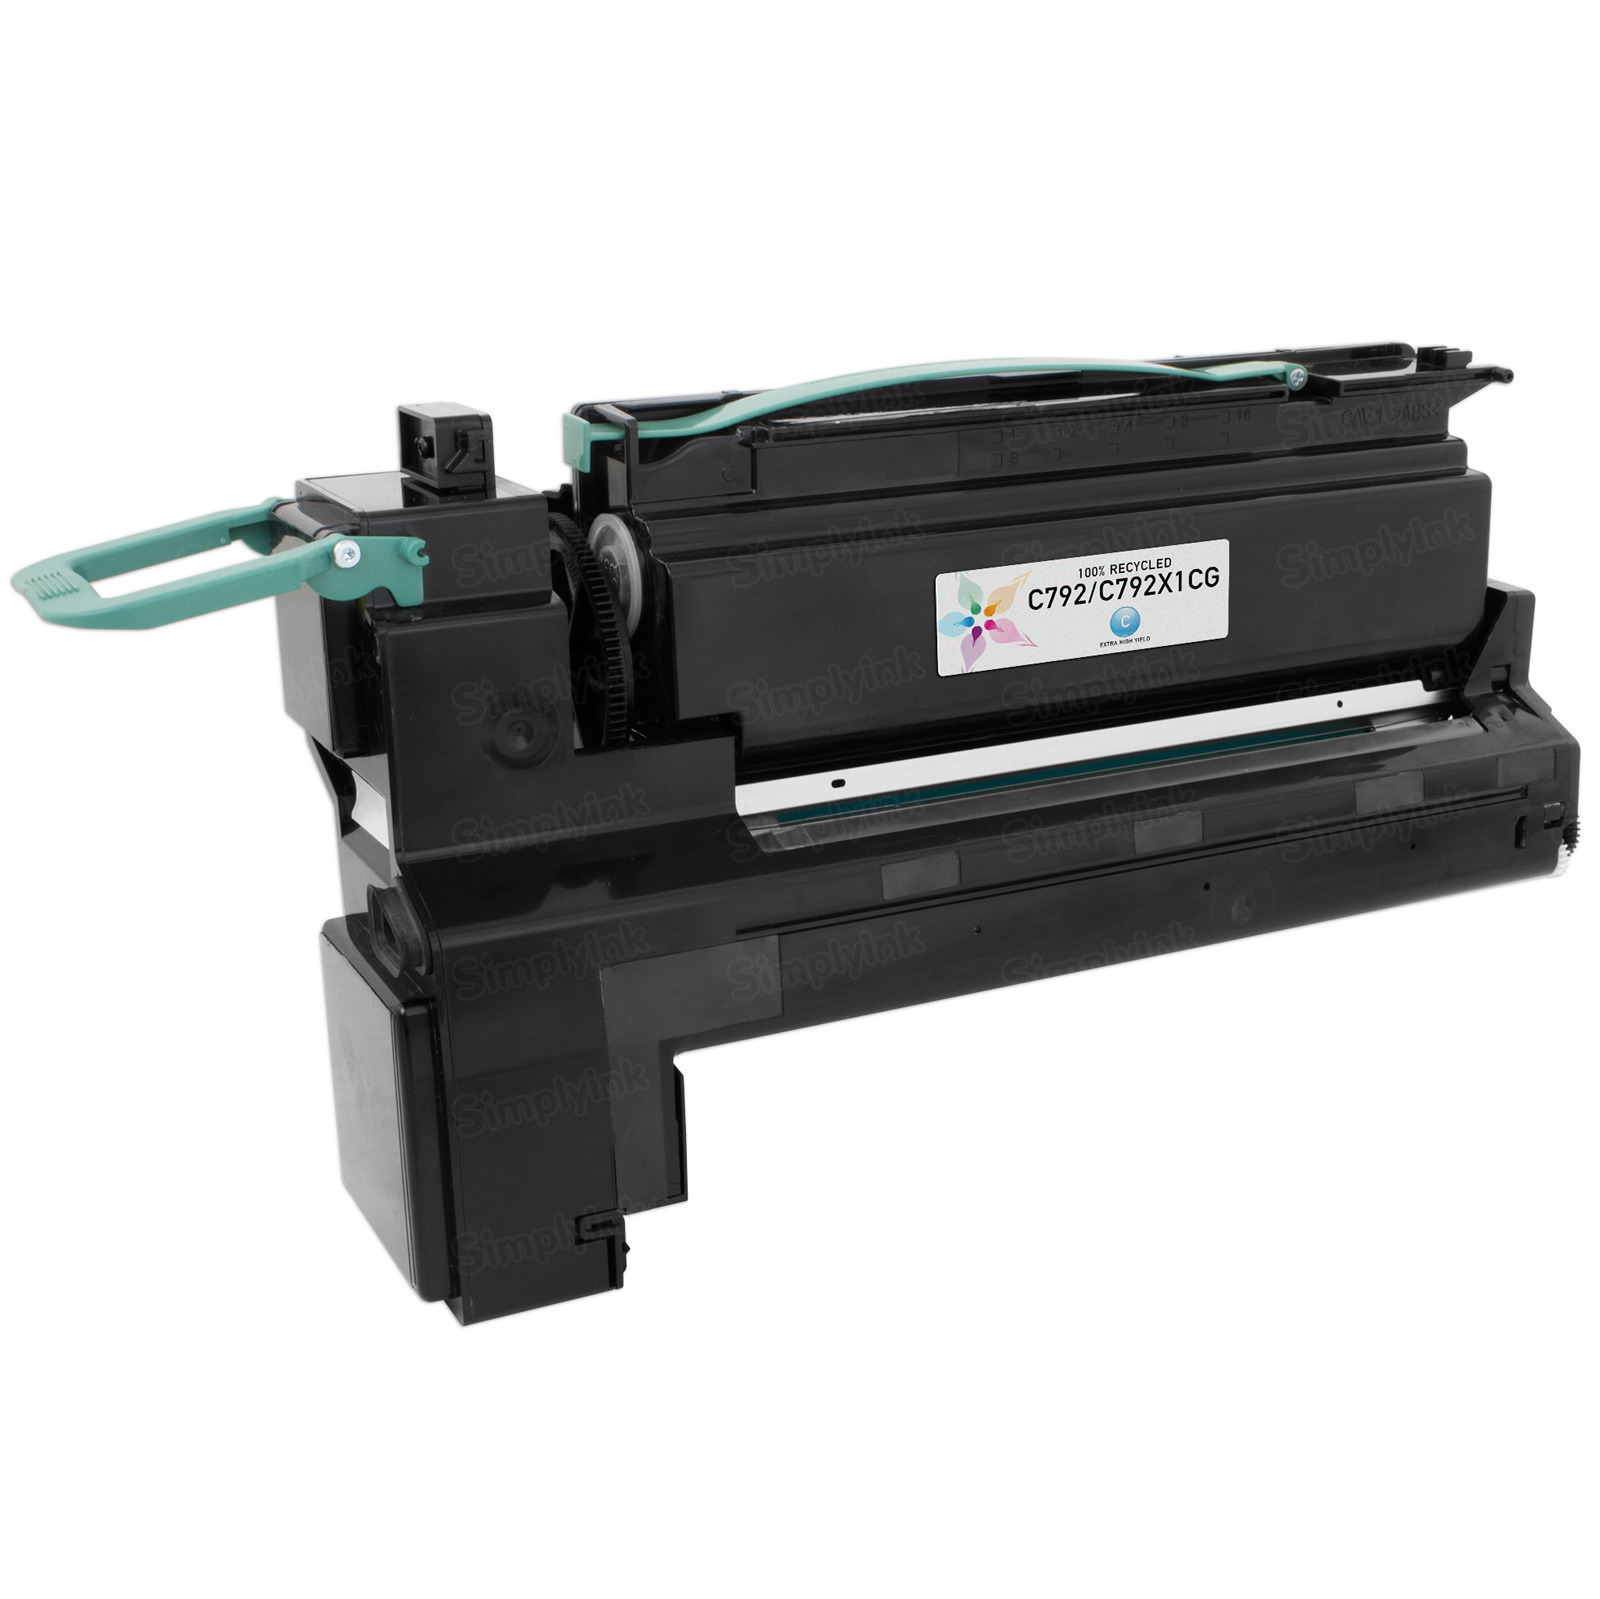 Lexmark Remanufactured Extra HY Cyan Toner, C792X1CG (C792)